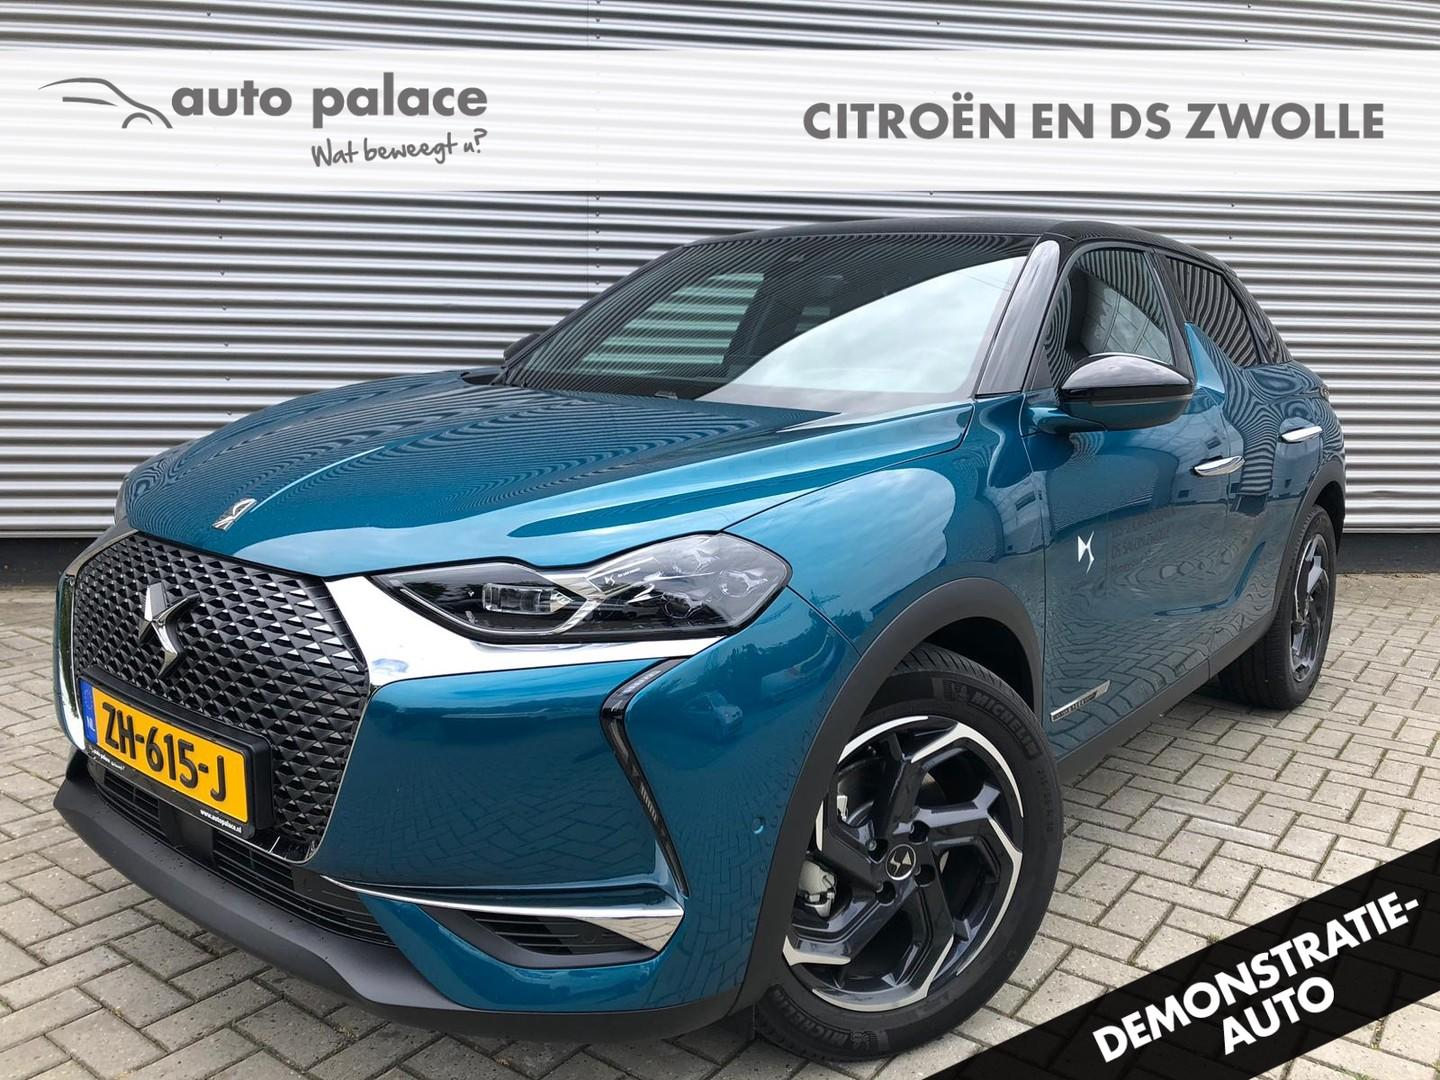 Ds Ds 3 crossback 1.2 puretech 130pk aut grand chic